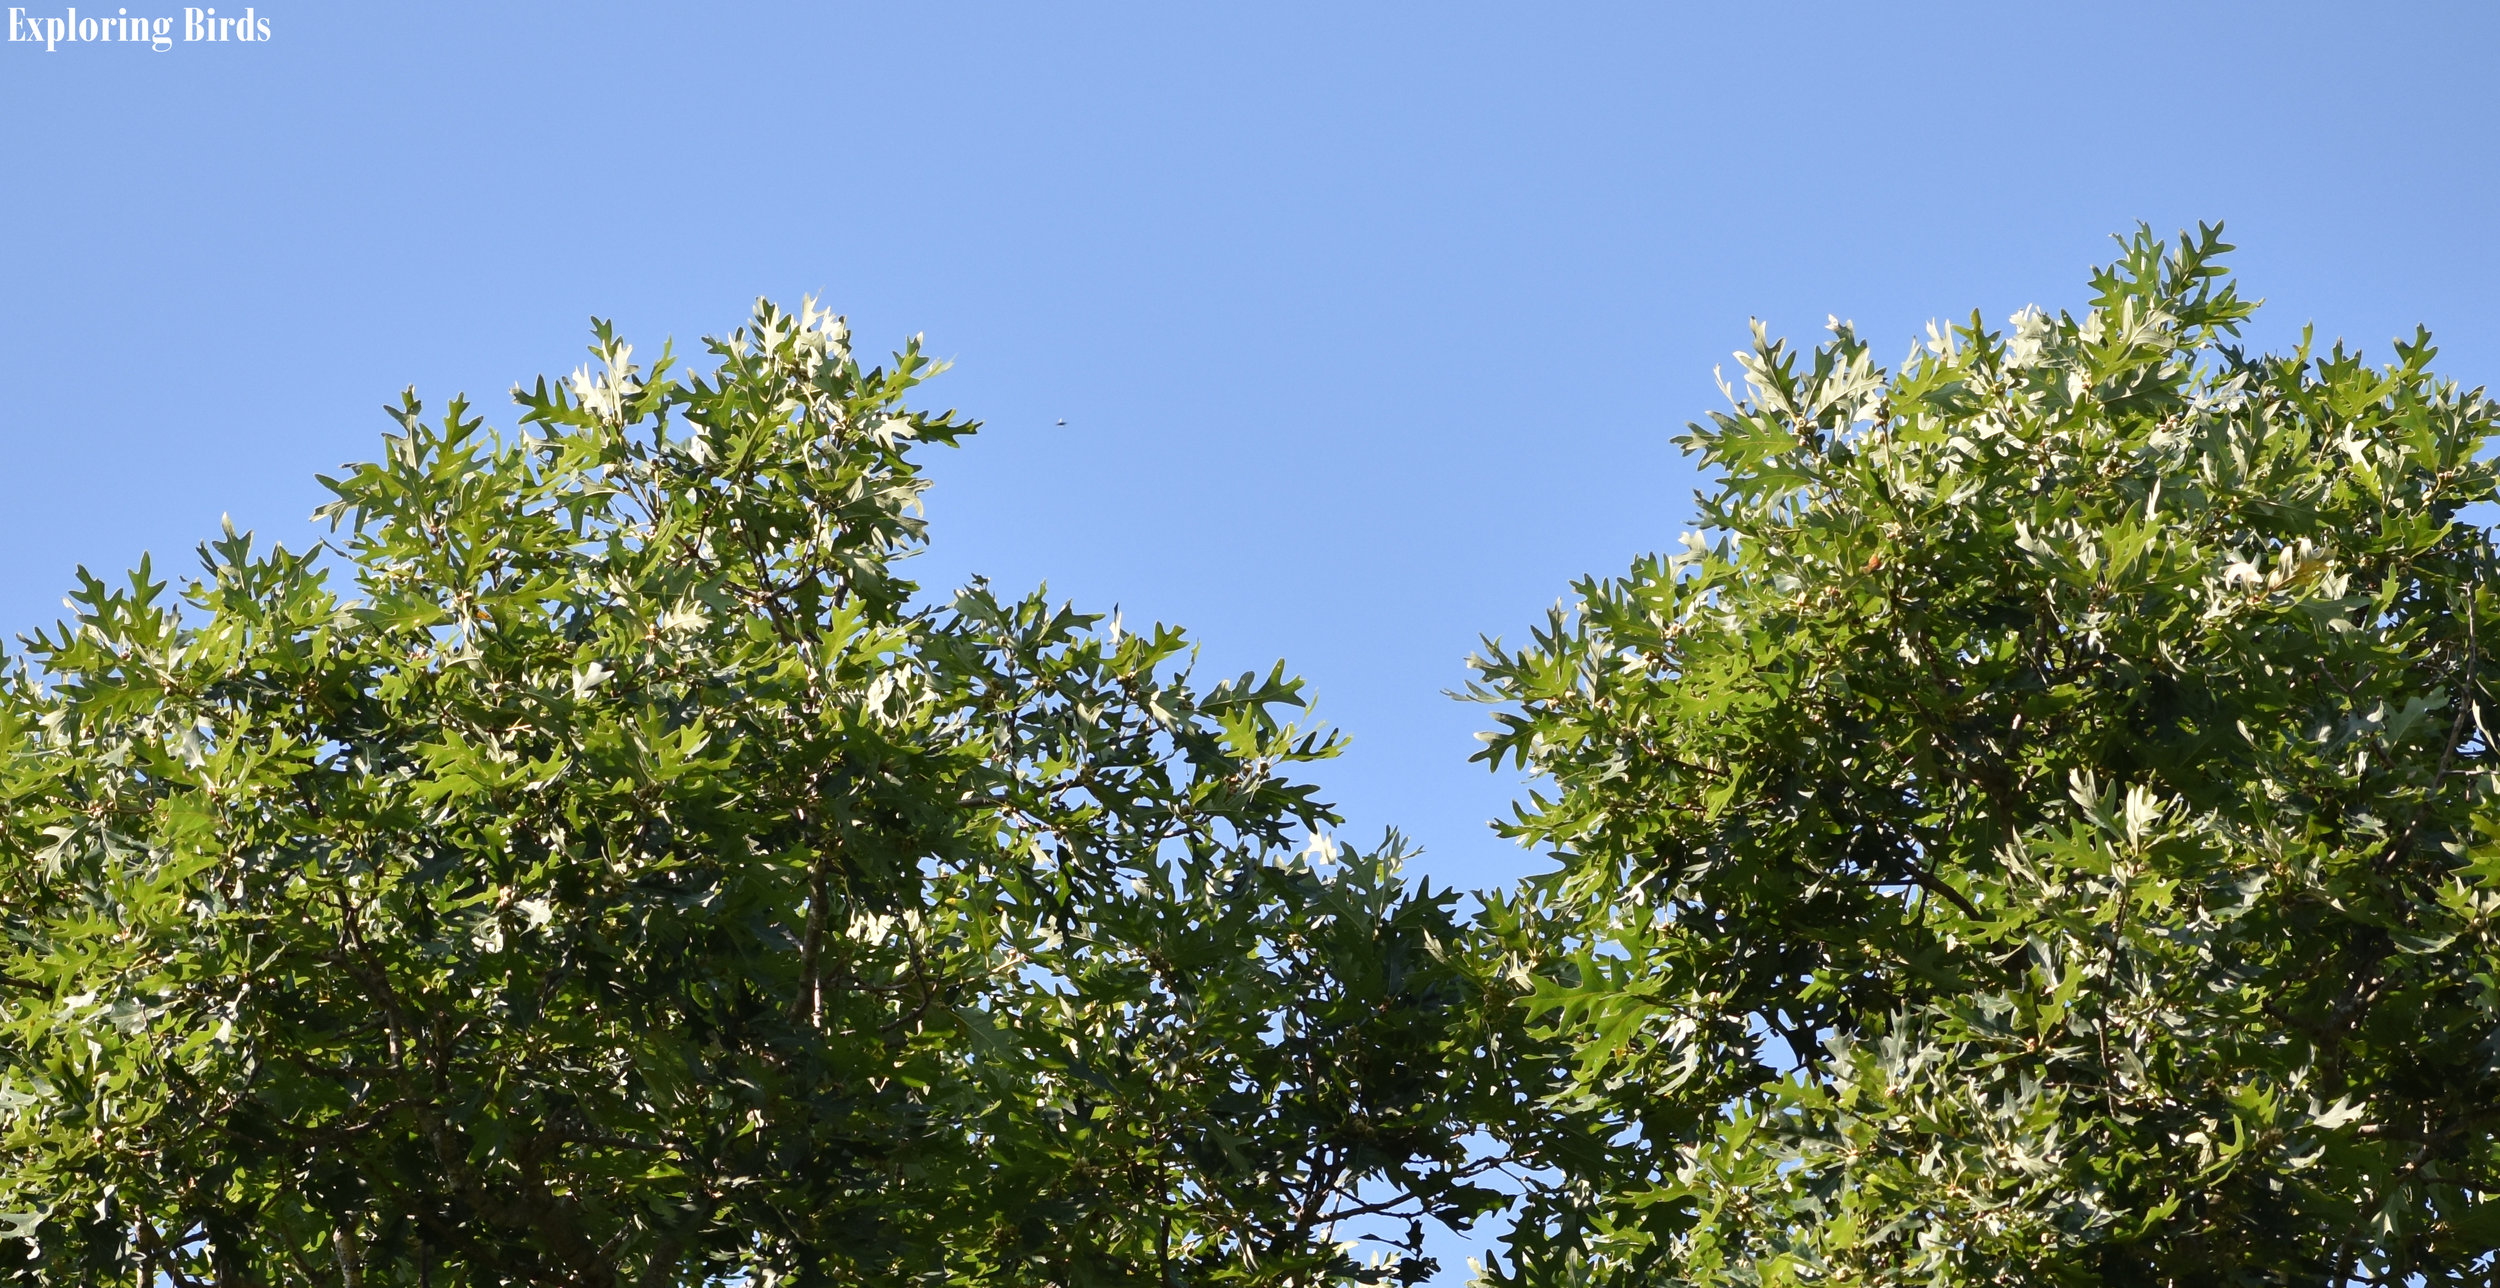 White Oak is a tree that attracts birds